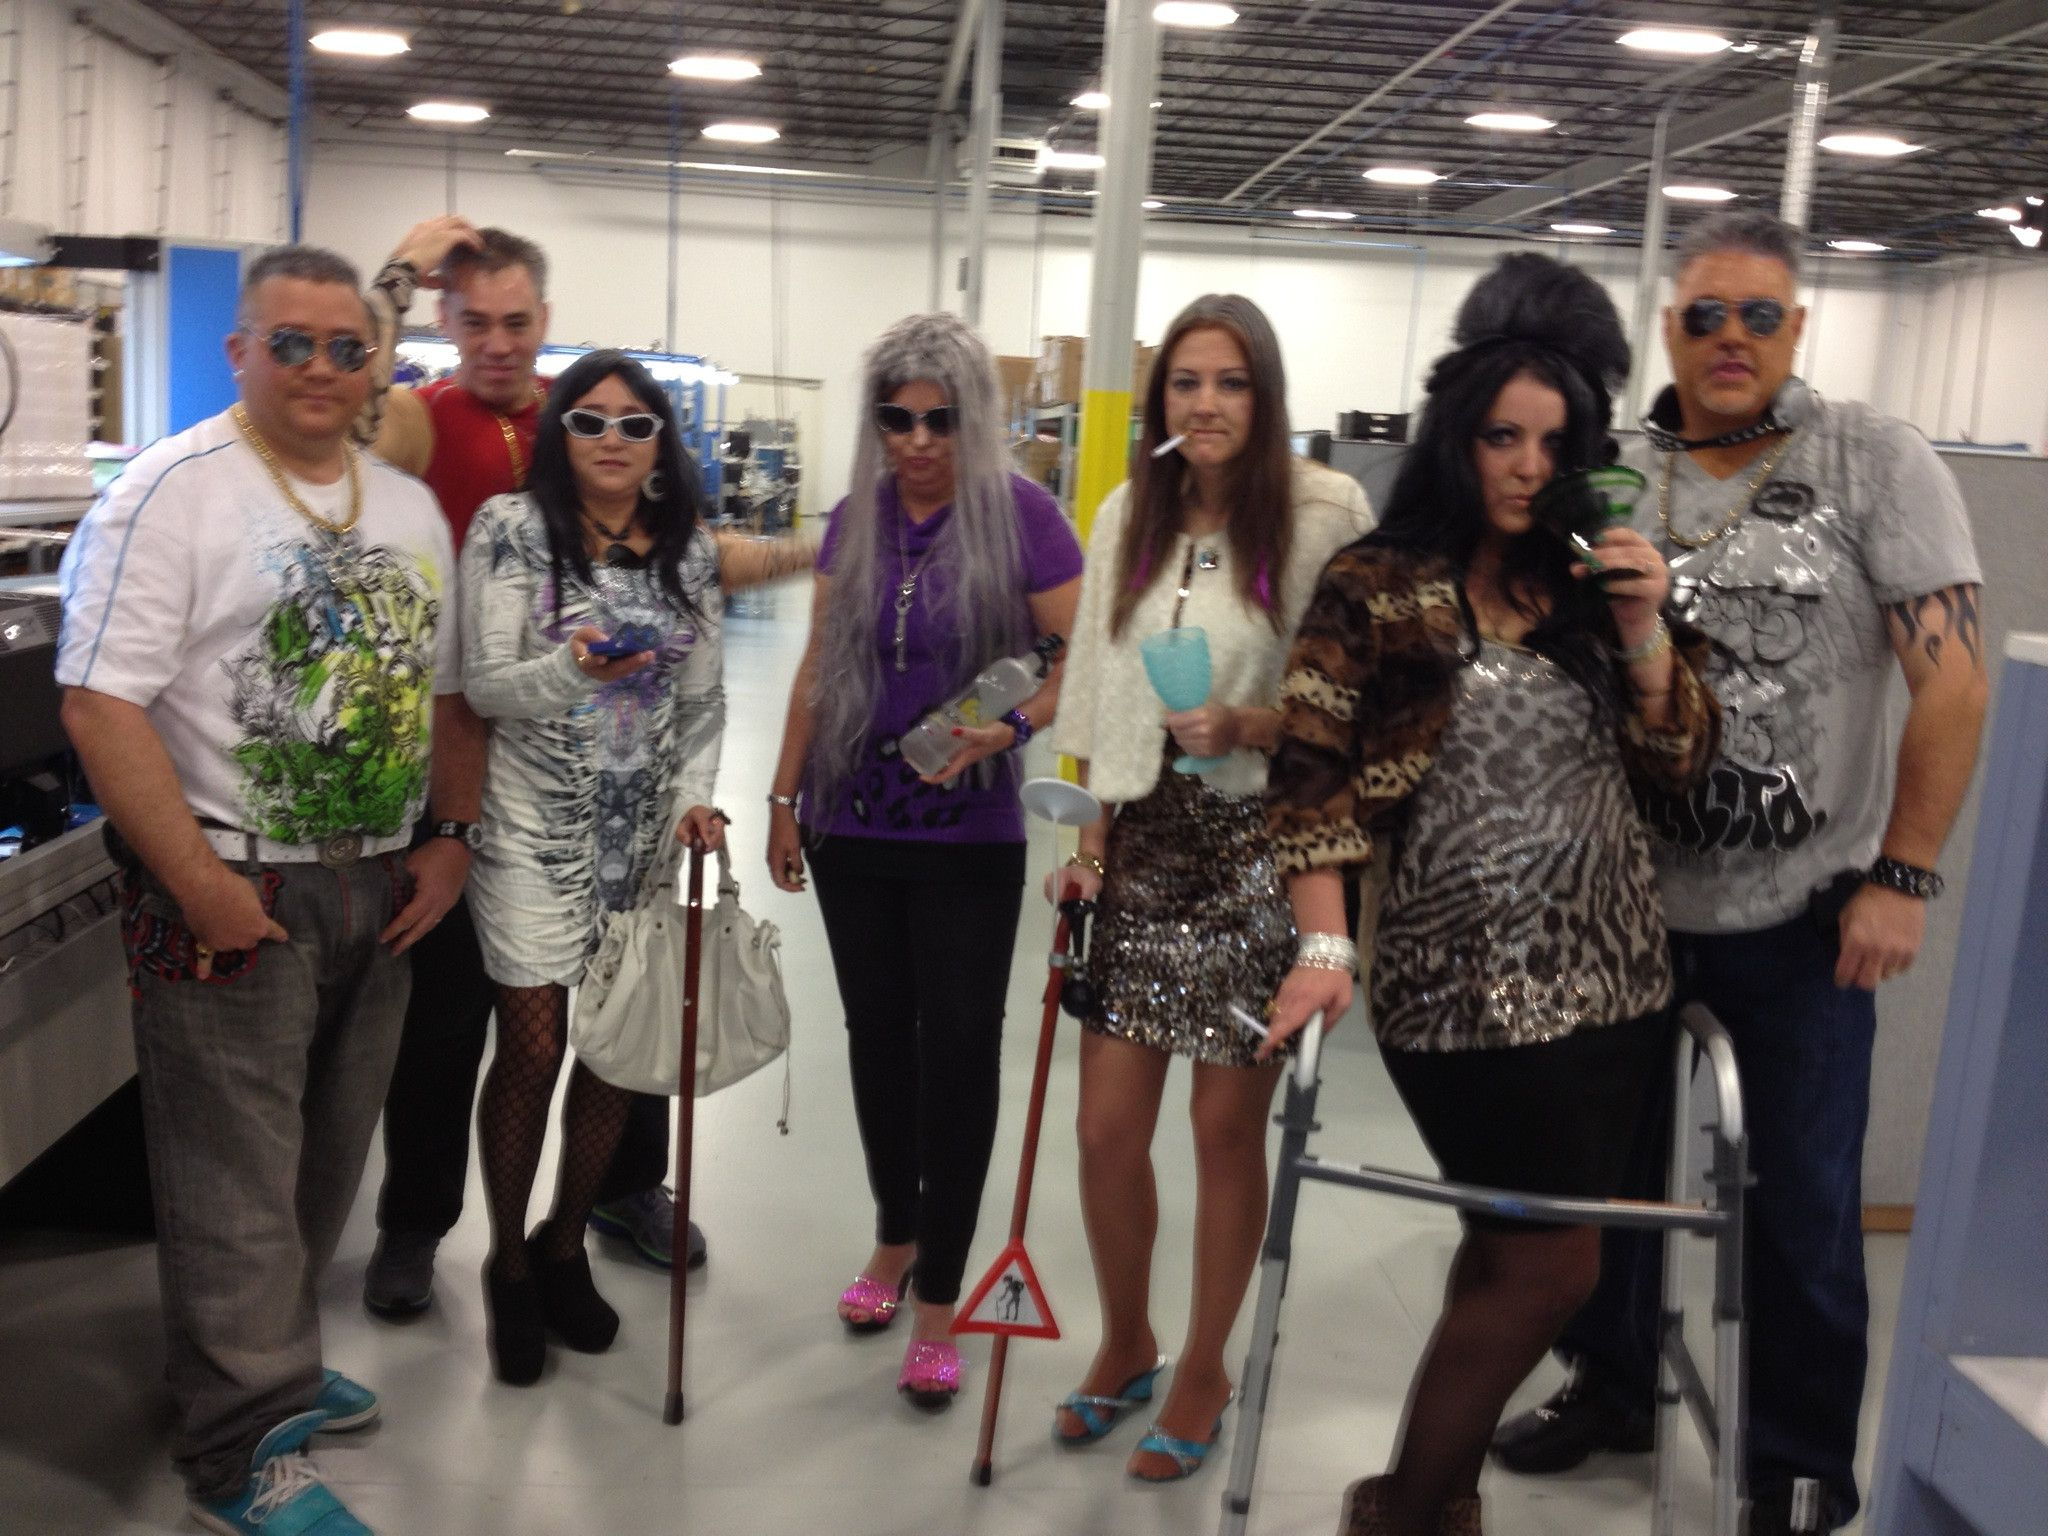 halloween ideas for the office. My Mom And Her Office Dressed Up As The Cast Of Jersey Shore 50 Years In Halloween Ideas For C